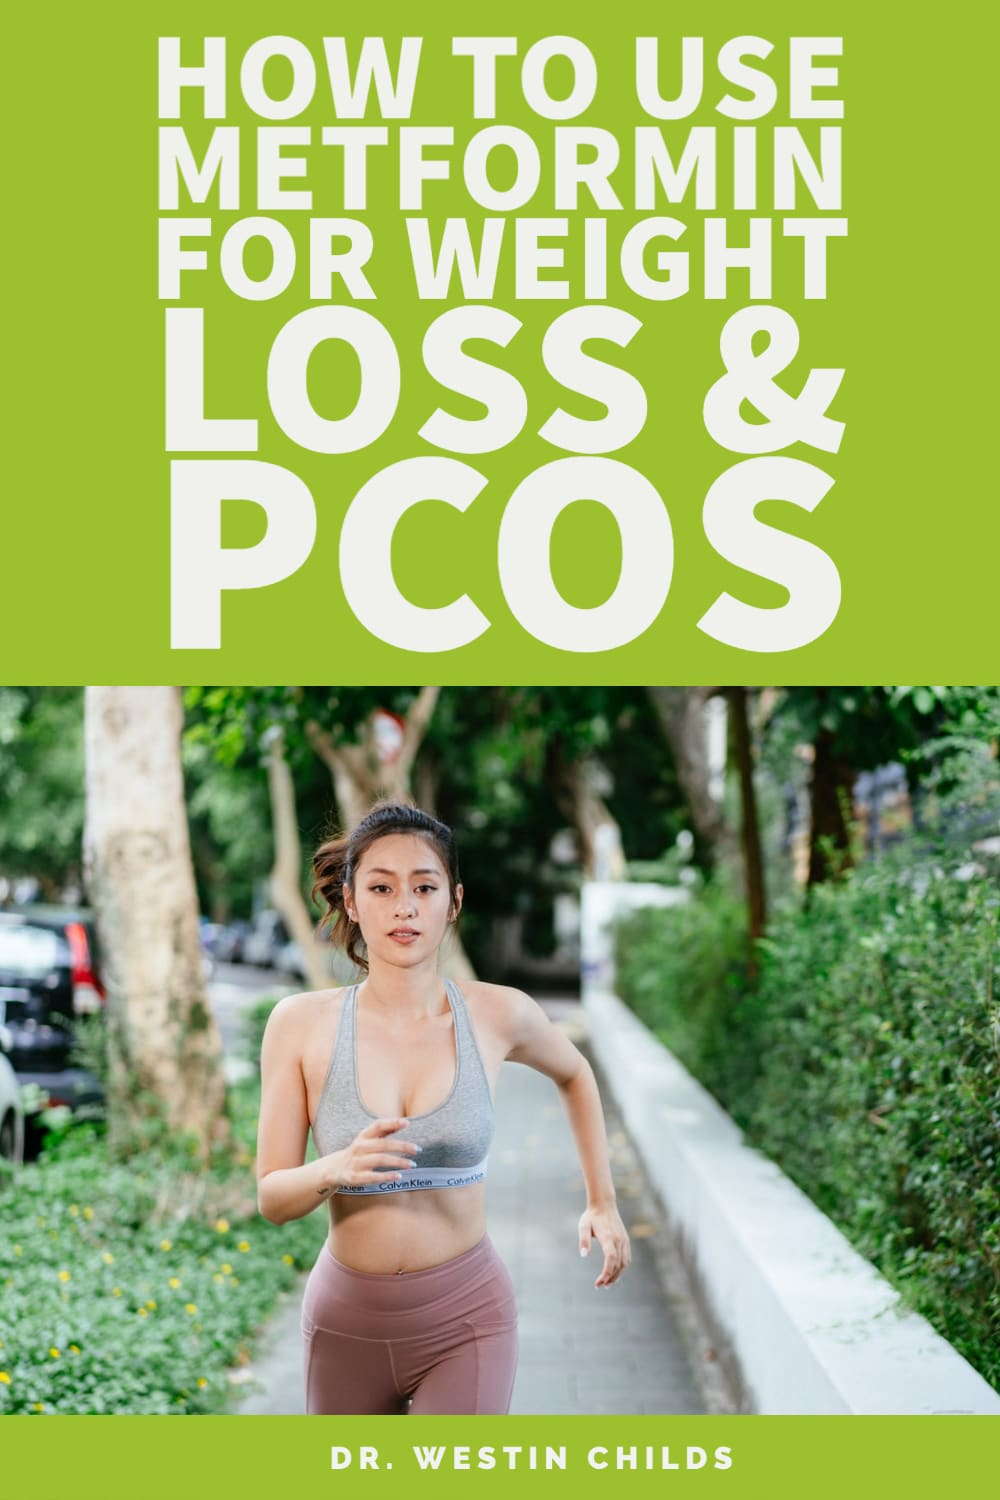 how to use metformin for weight loss and pcos